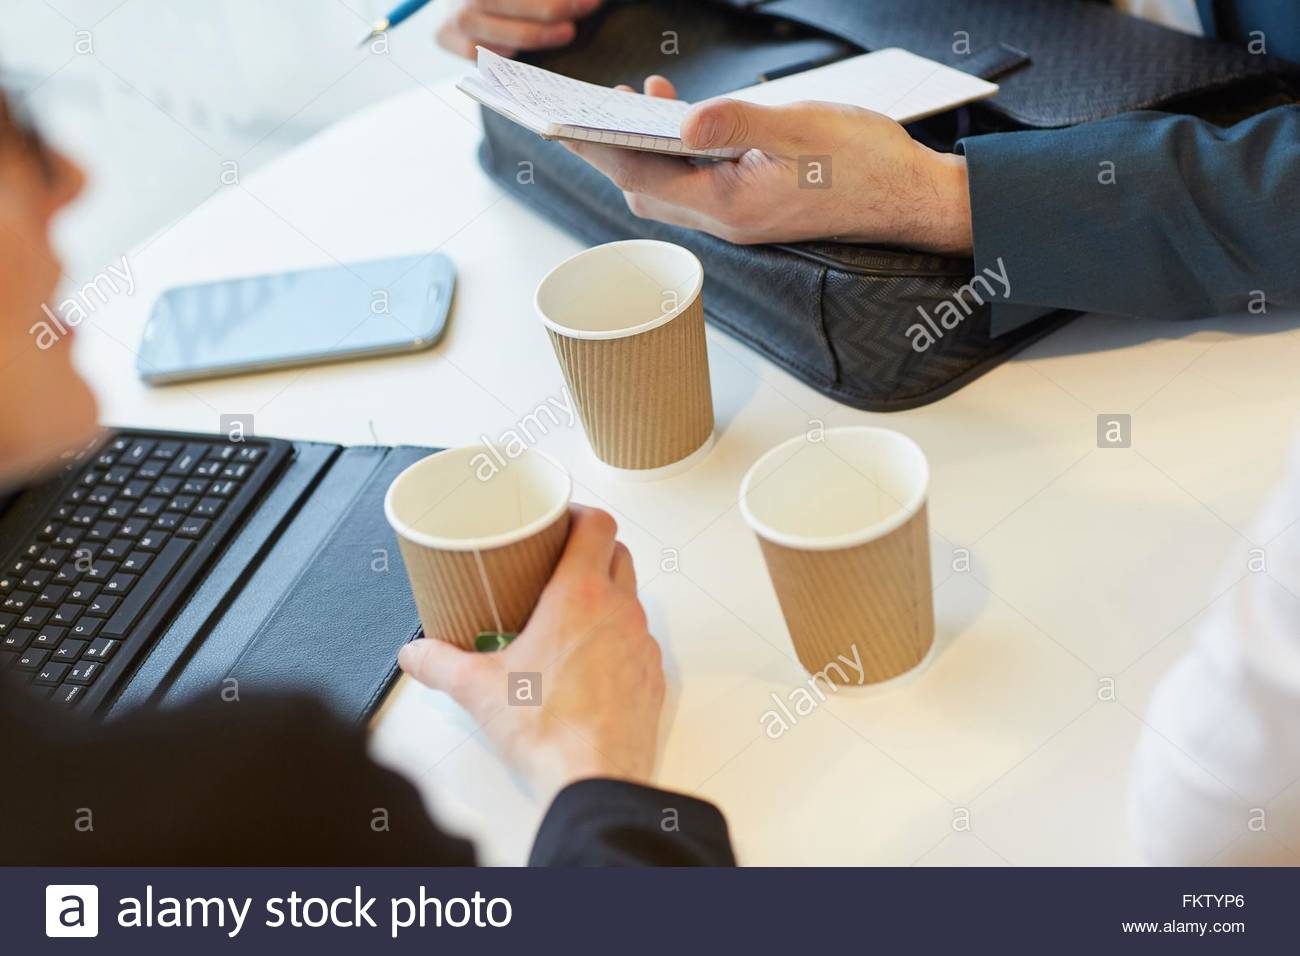 High angle view of colleagues in meeting holding notebook and disposable cups - Stock Image